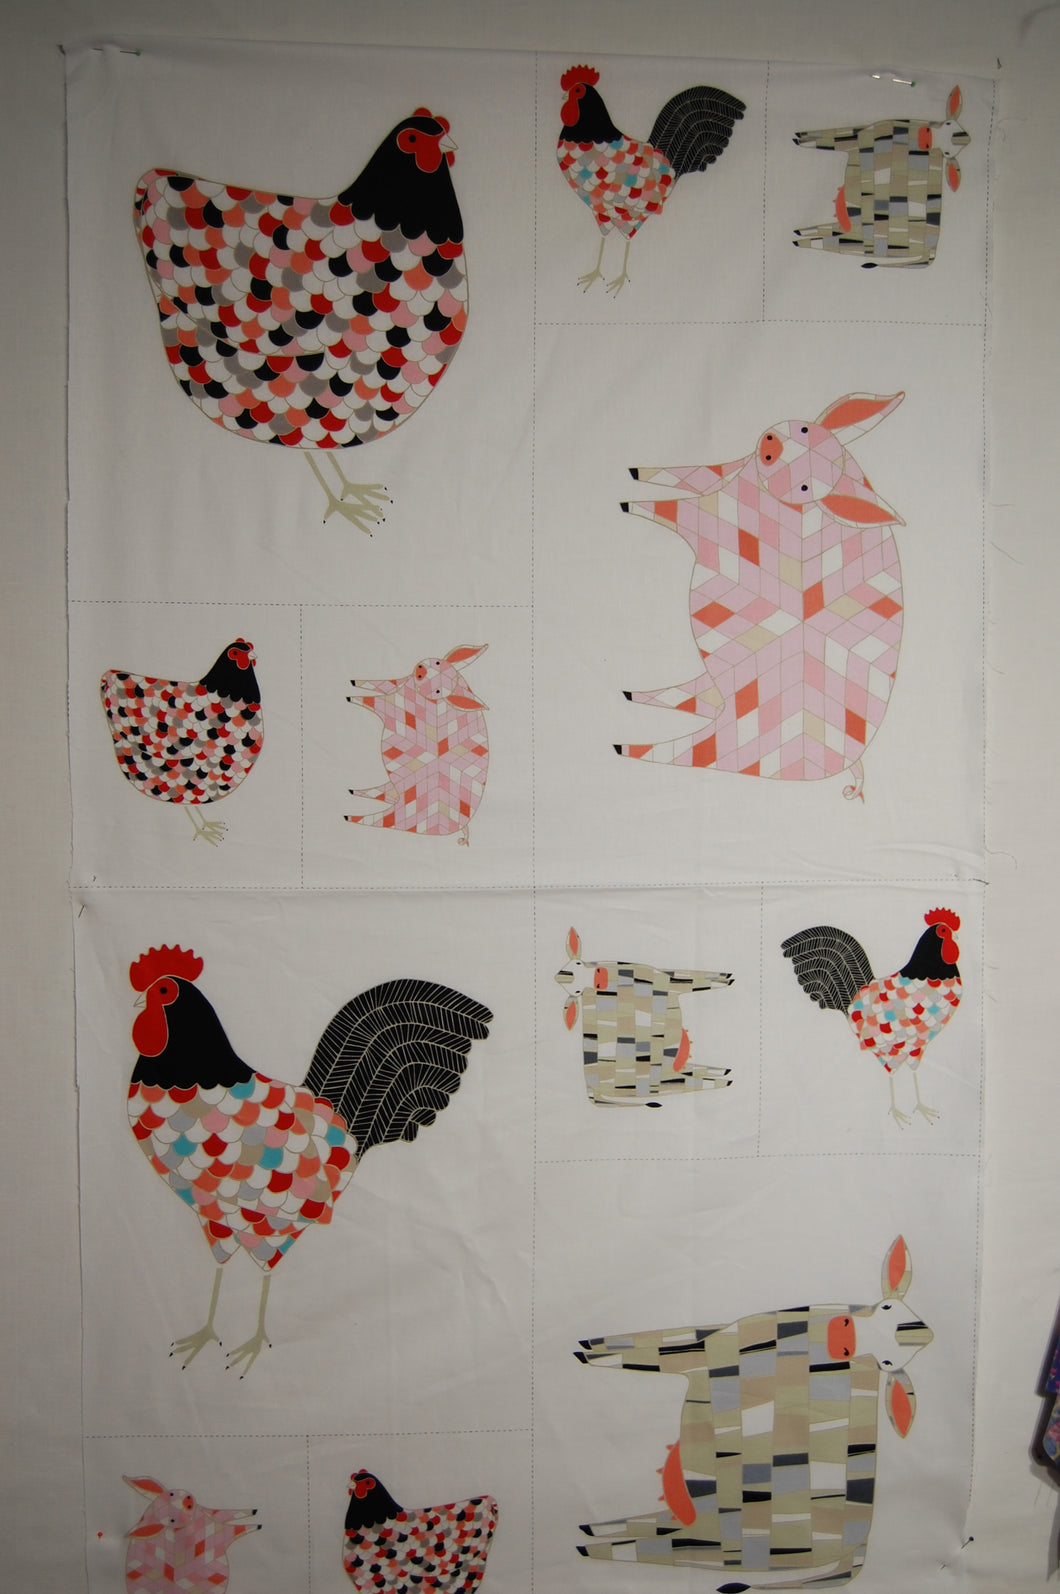 Fabric Shack Sewing Quilting Sew Fat Quarter Cotton Quilt Patchwork Dressmaking Gingiber for Moda Farm Fresh Chicken Hen Cockerel Pig Cow Panel Scallop Rain StripesGrey Turquoise Strawberries Strawberry (9)